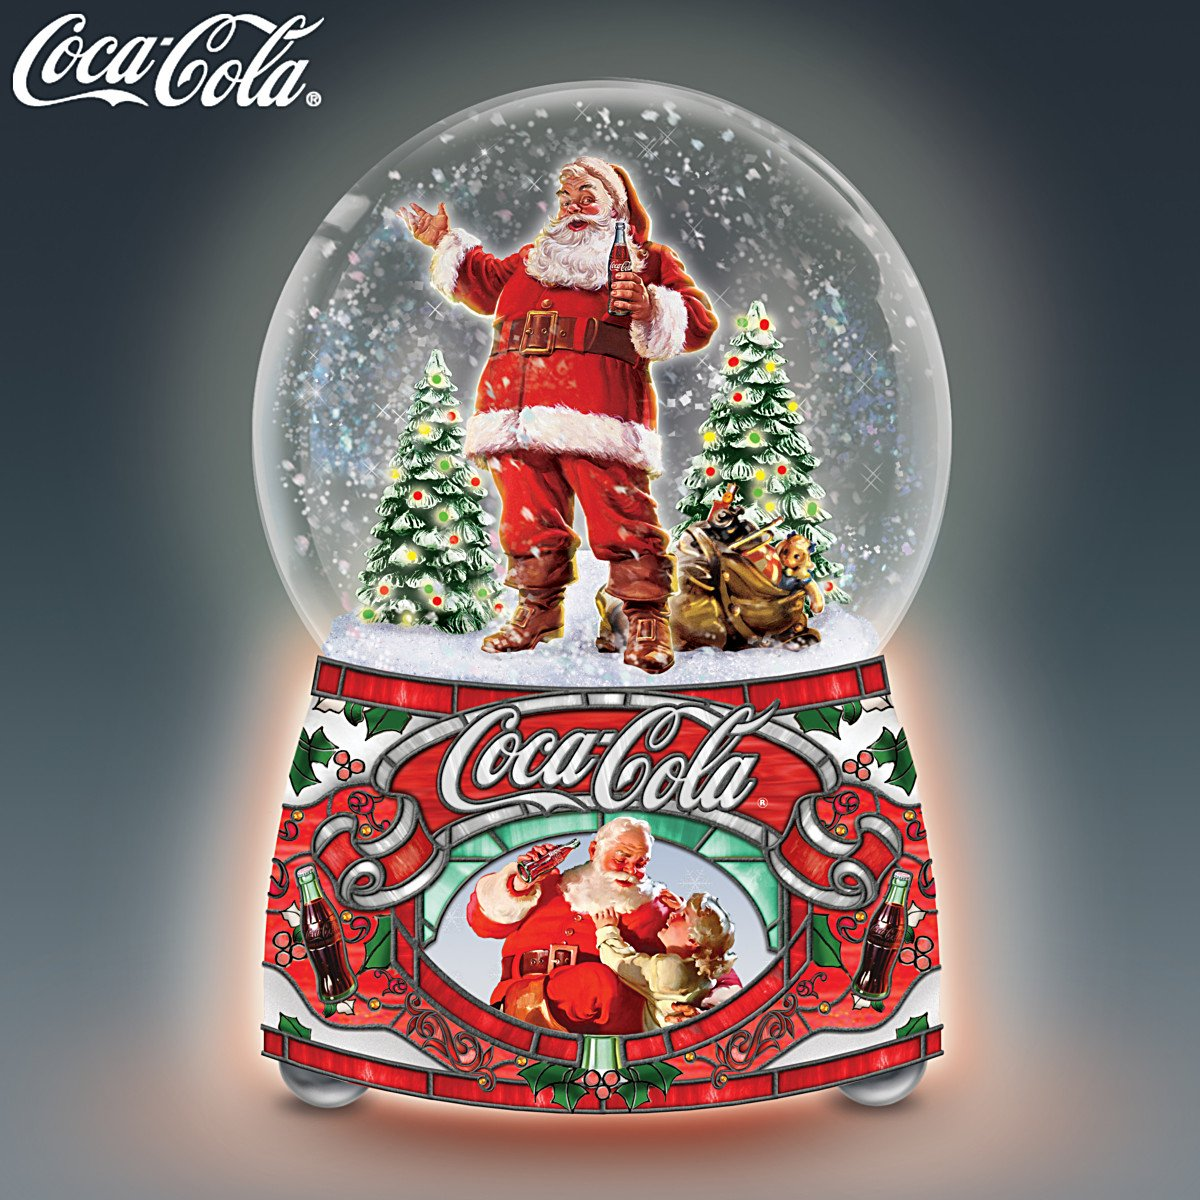 COCA COLA Santa Musical Glitter Globe Lights Up and Plays Jingle Bells by The Bradford Exchange by Bradford Exchange (Image #5)